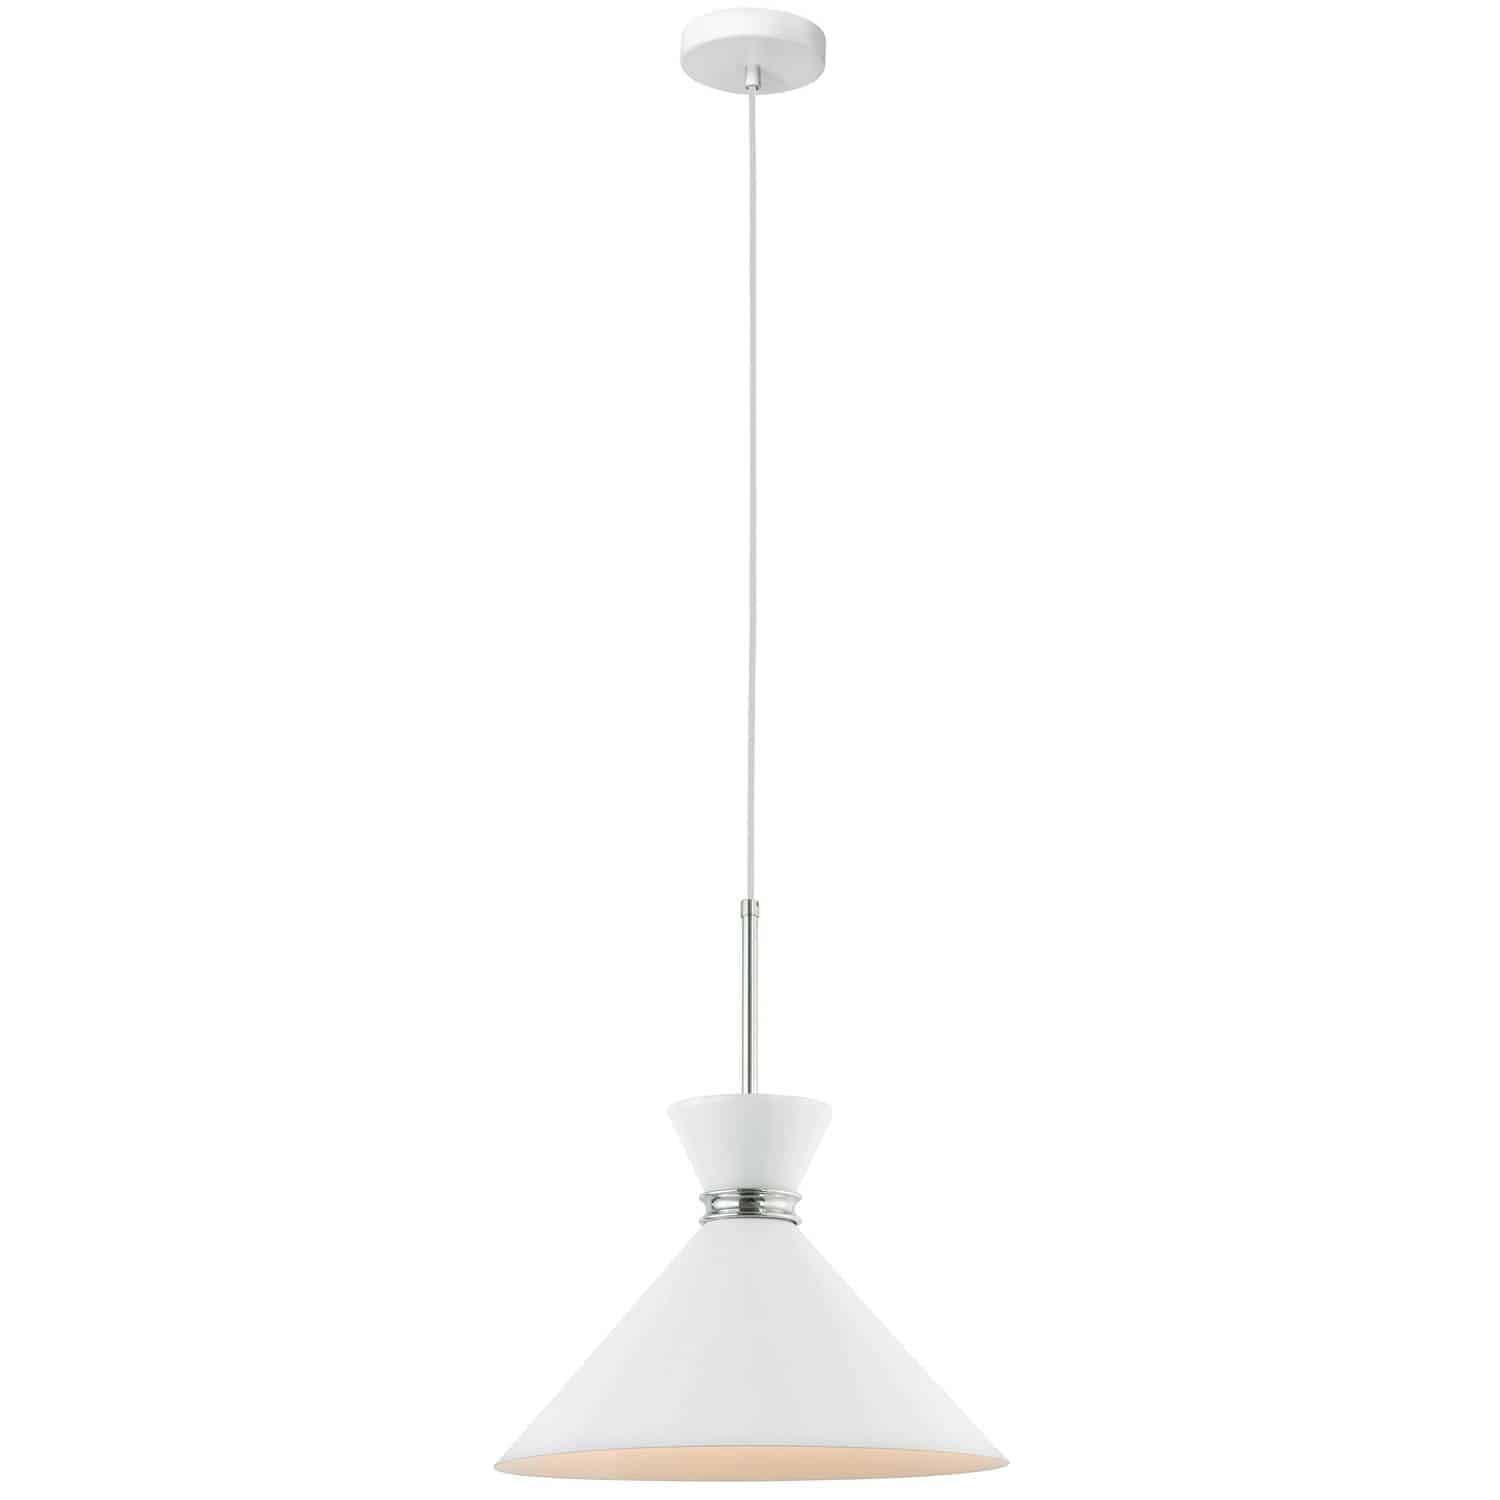 1 Light Incandescent Pendant, Gloss White Shade with Polished Chrome Accent